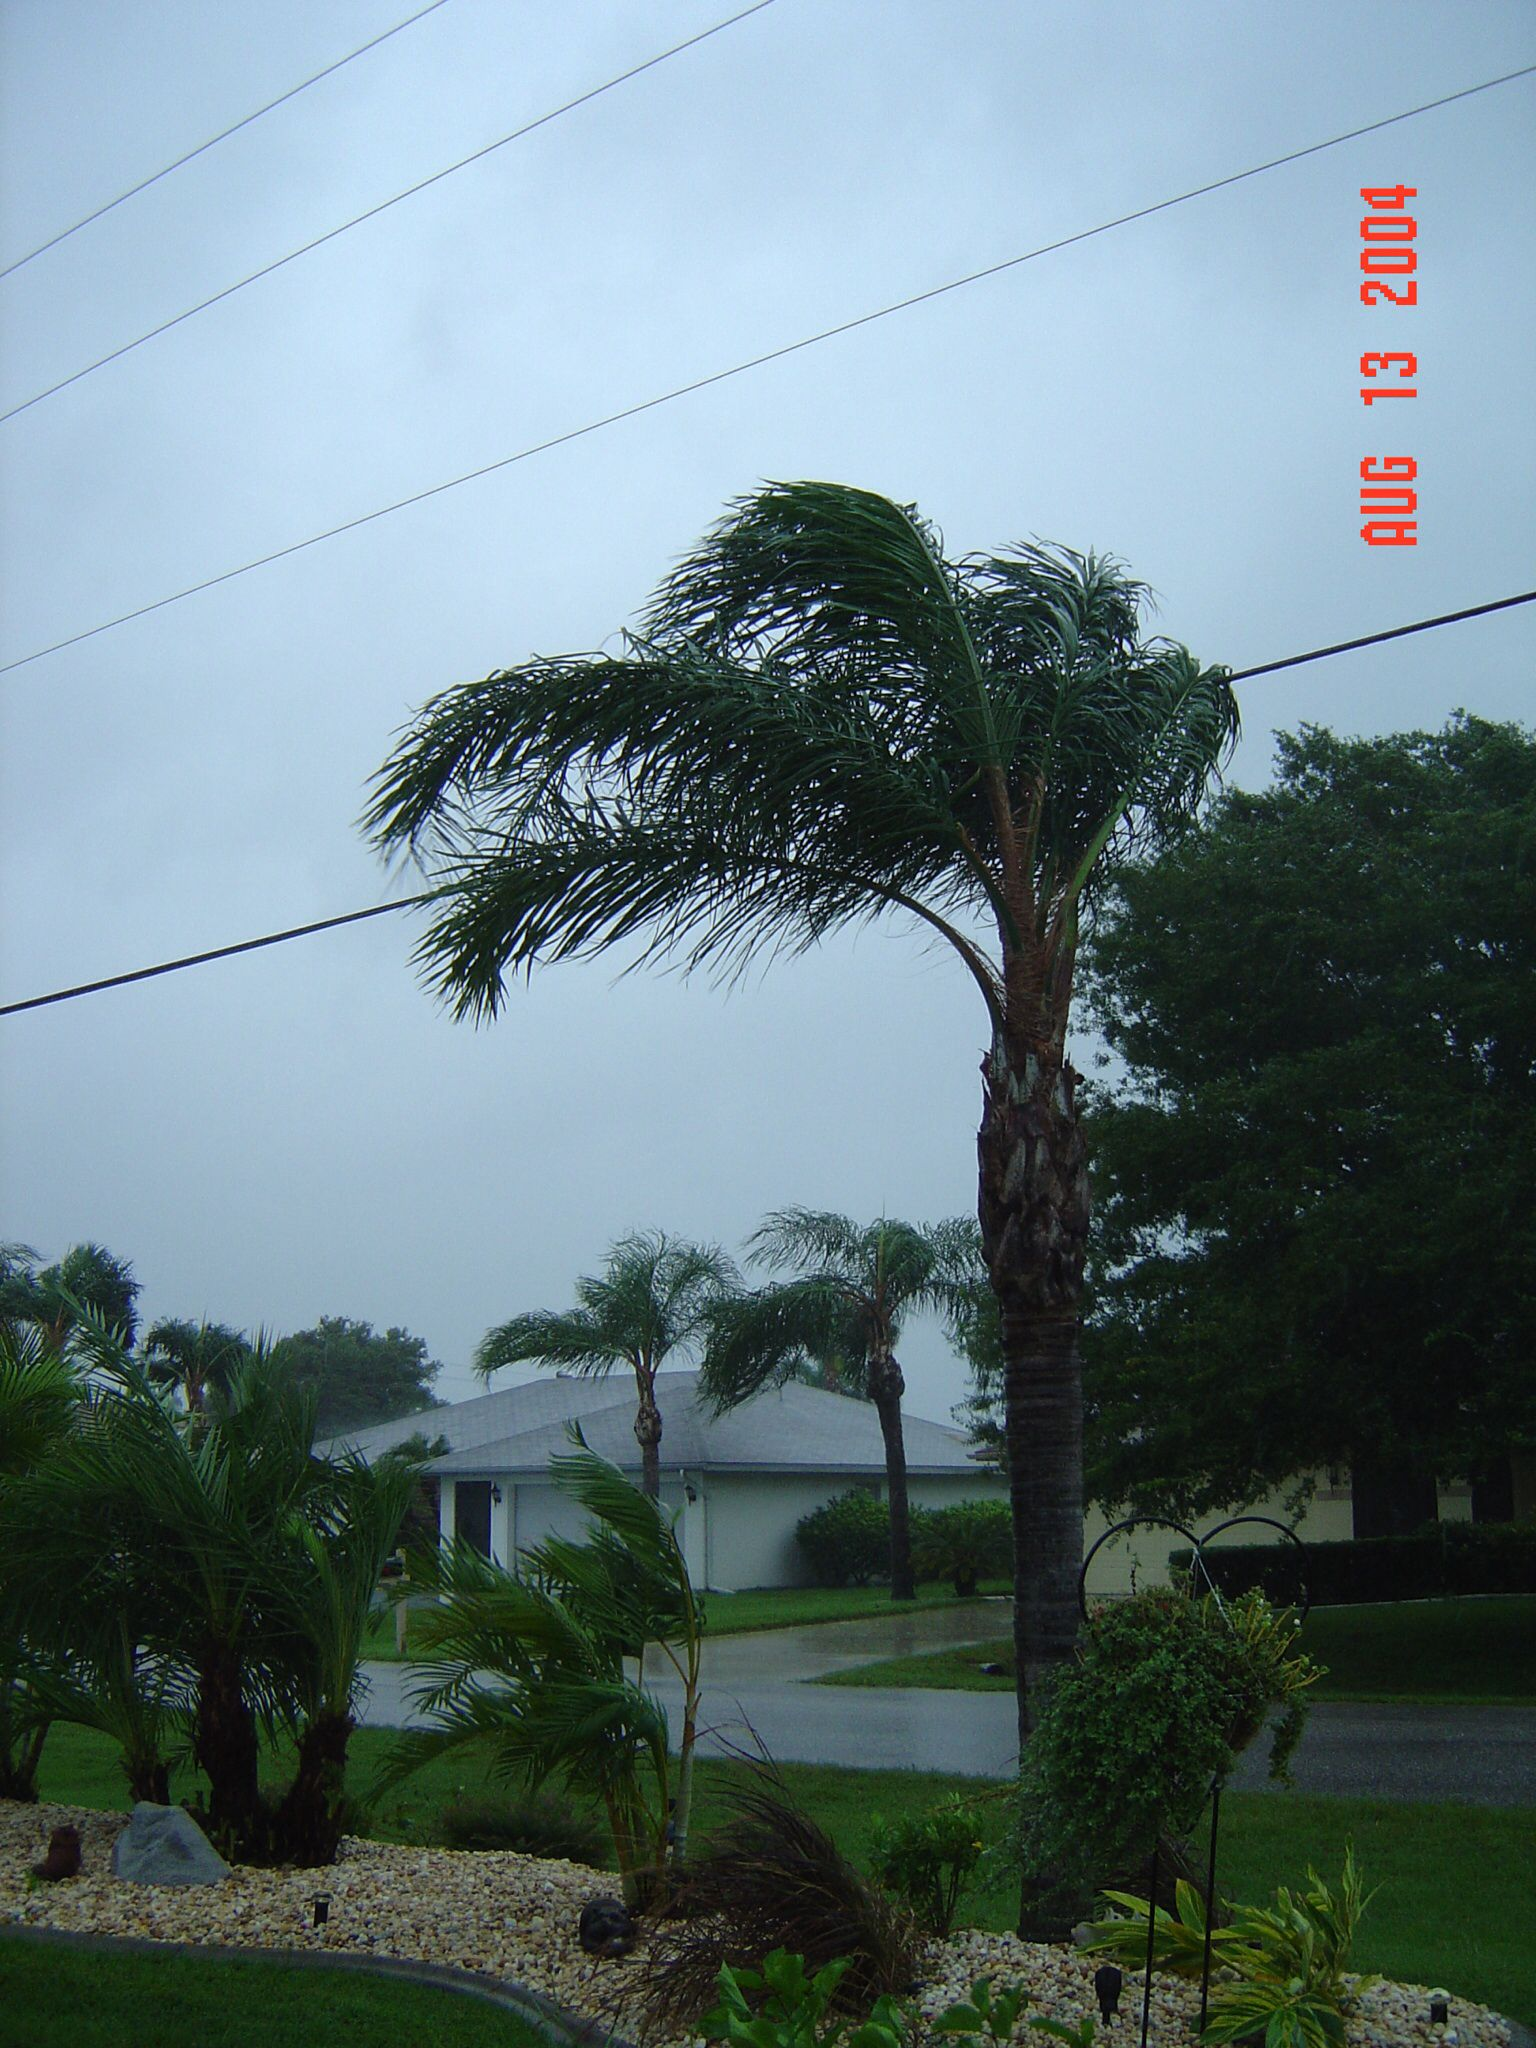 Pin On 2004 Aug 13 Hurricane Charley